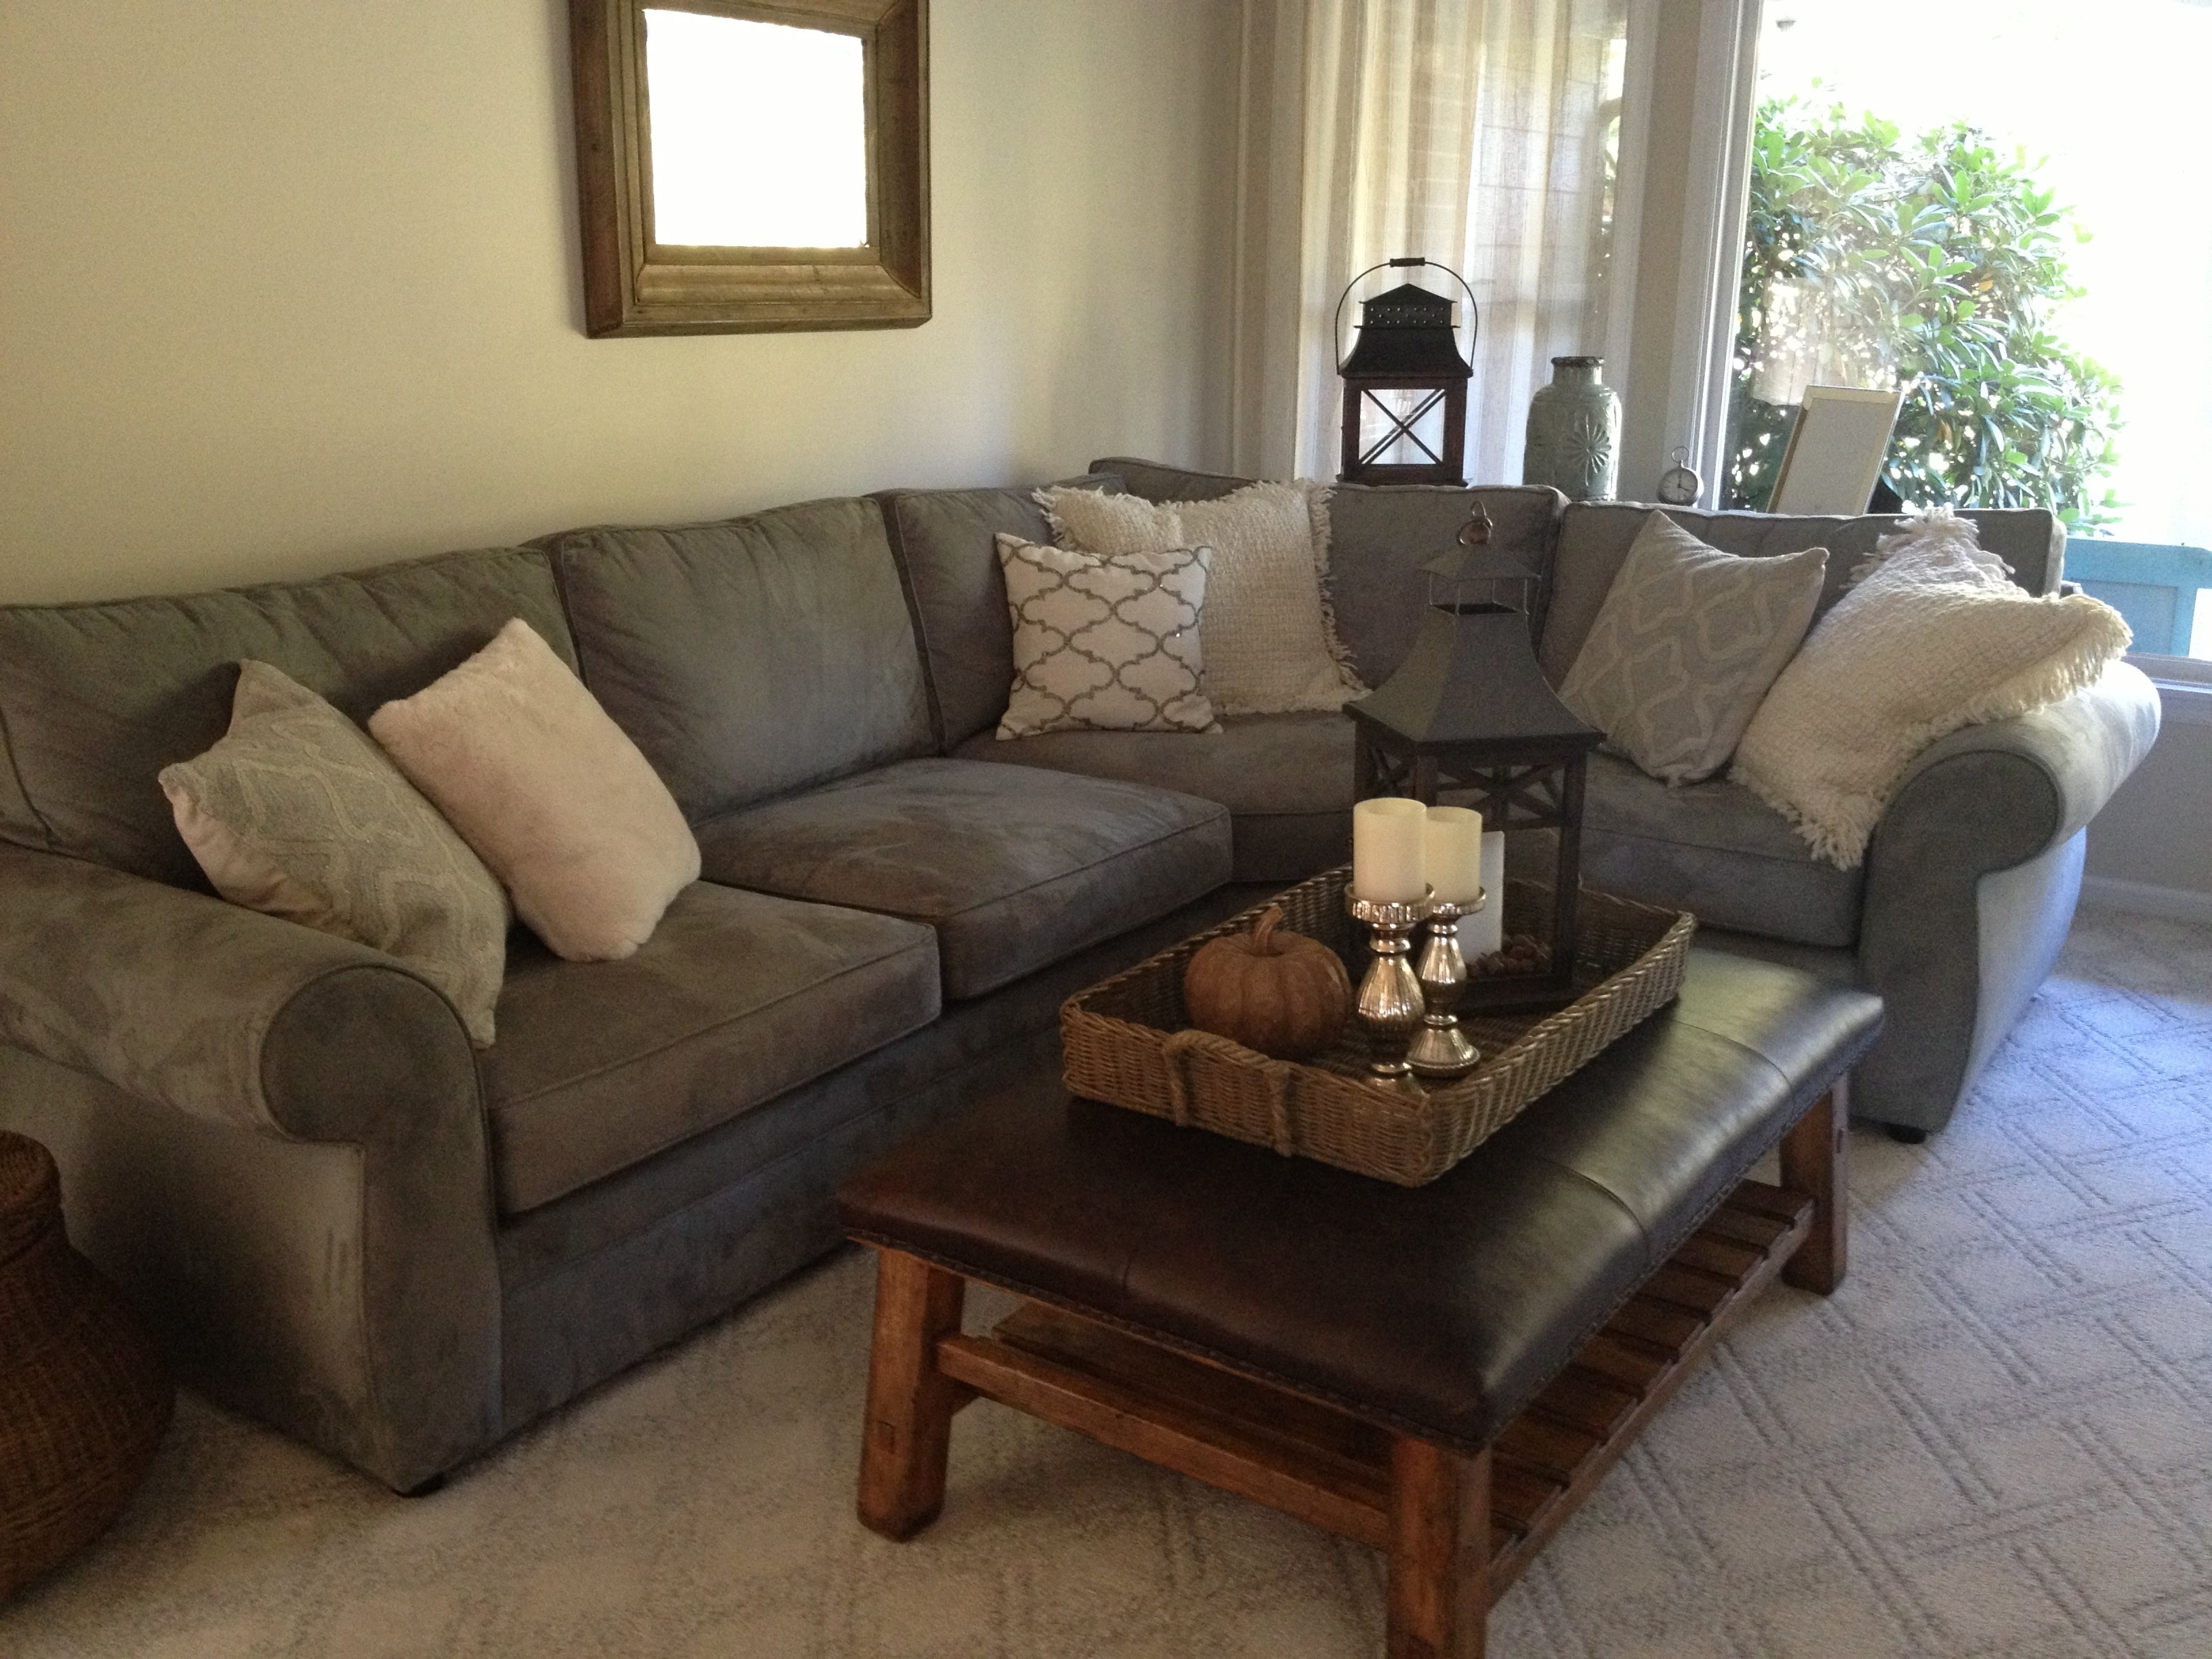 Pottery Barn Sectional Sofas For Famous Pottery Barn Pearce Couch (View 13 of 20)